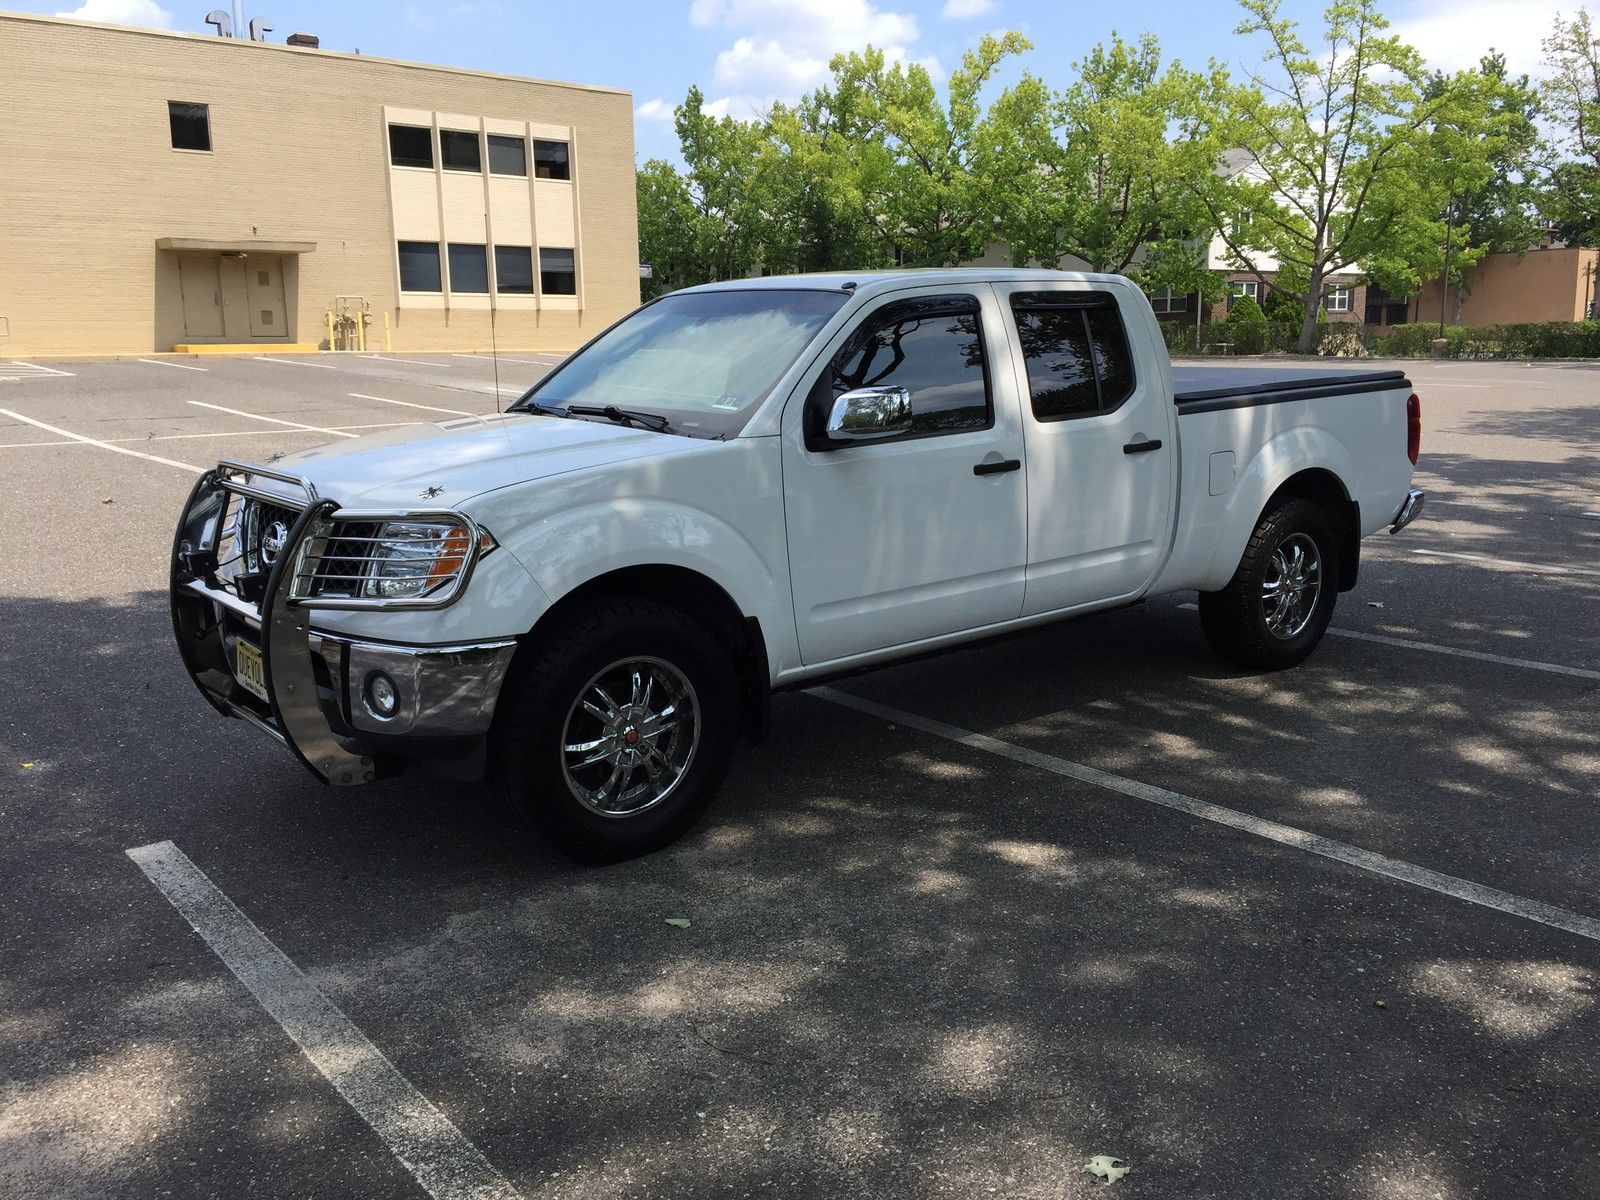 Nissan Frontier Pickups For Sale on 1995 Dodge Ram 1500